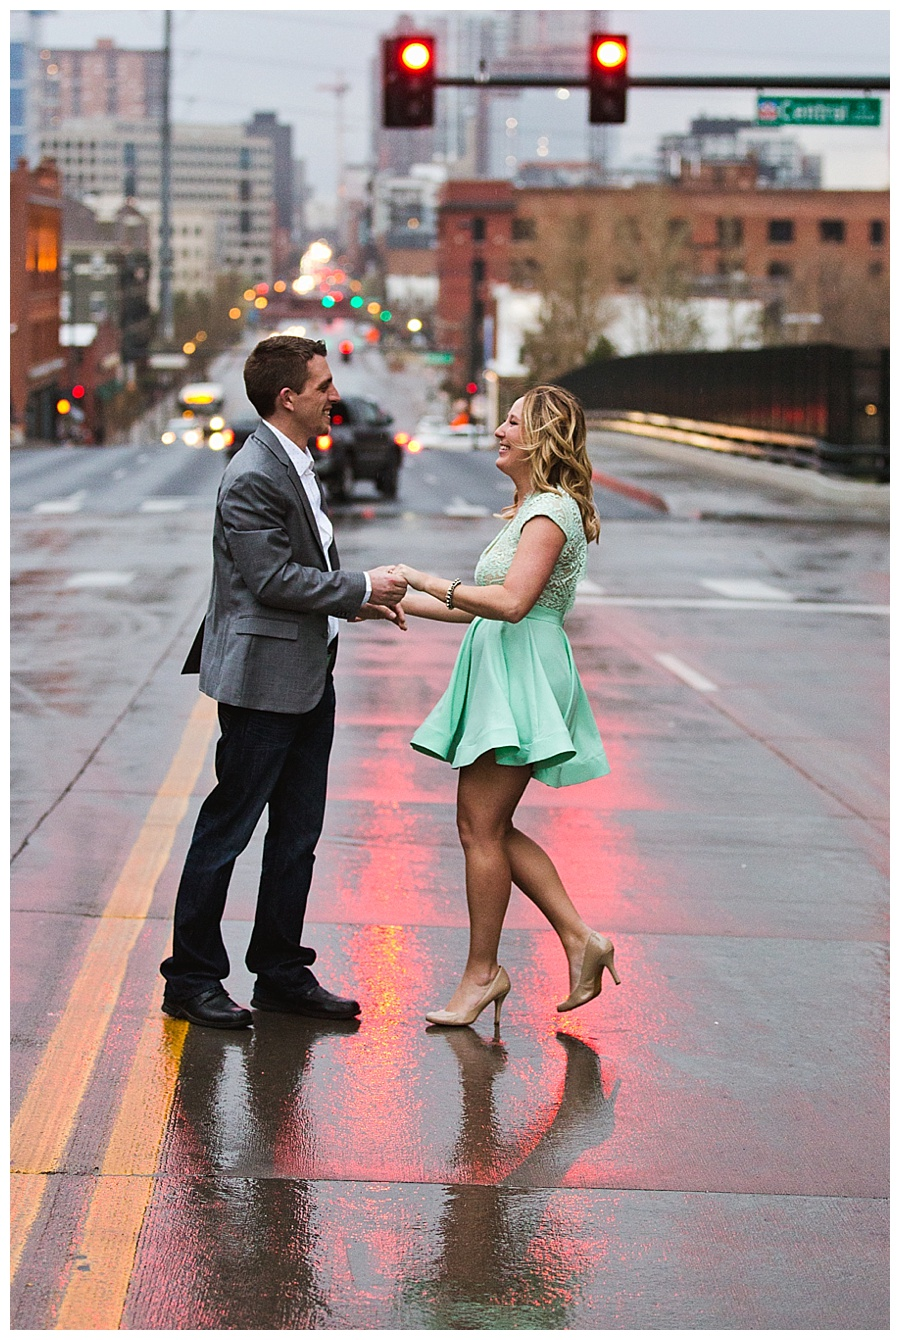 06 City engagement photos while dancing in the rain